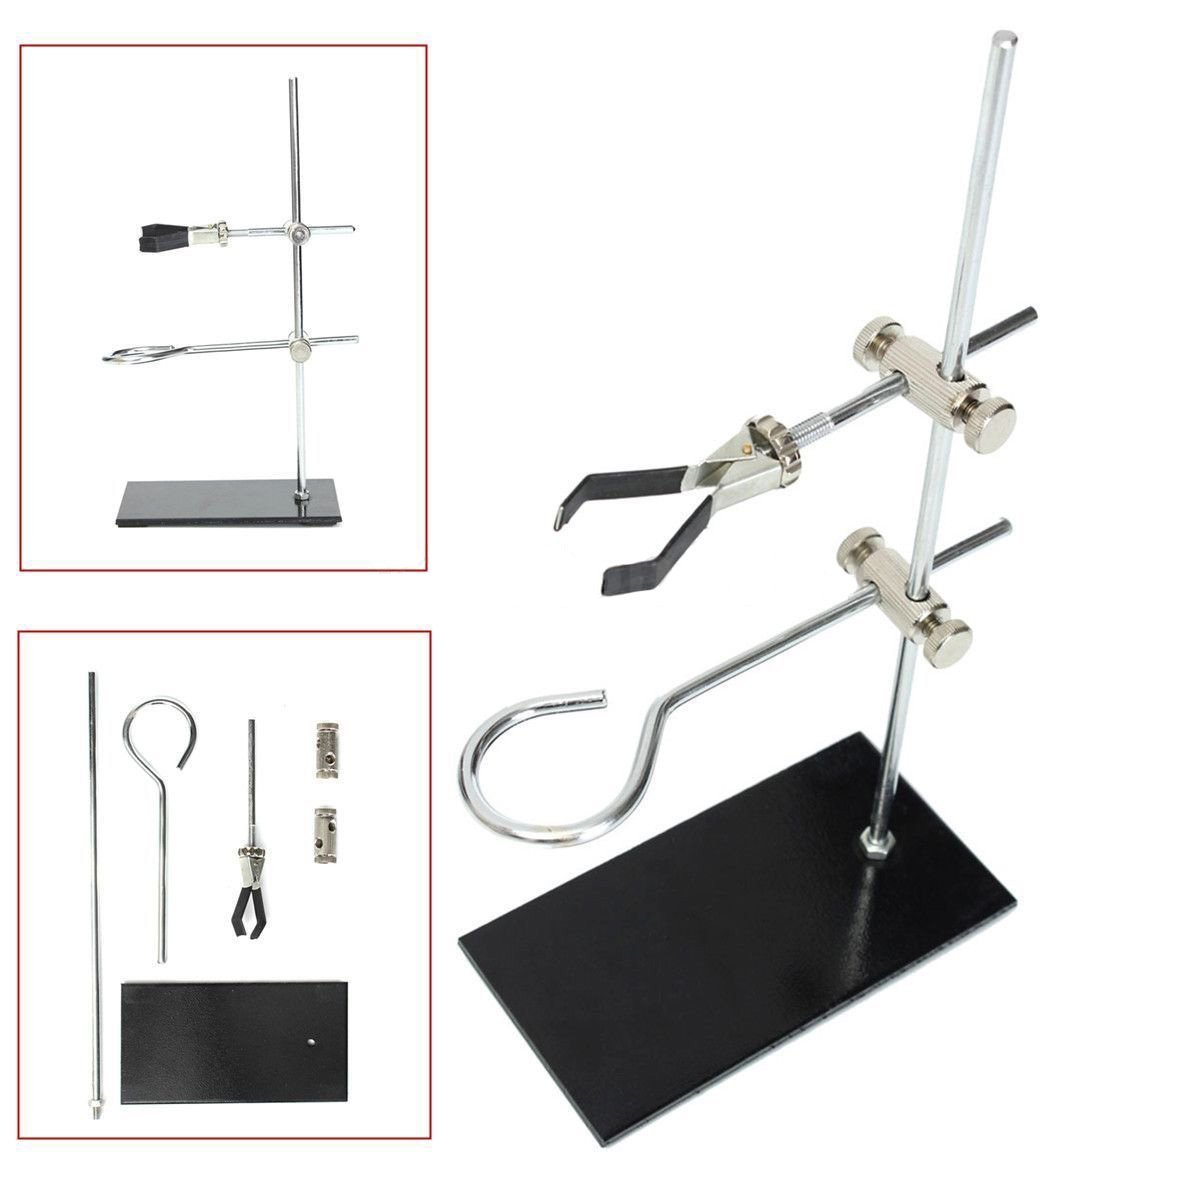 Mini Retort Stands Support Clamp Flask Laboratory Stand Set High Height 30CM modeling mixed species forest stands